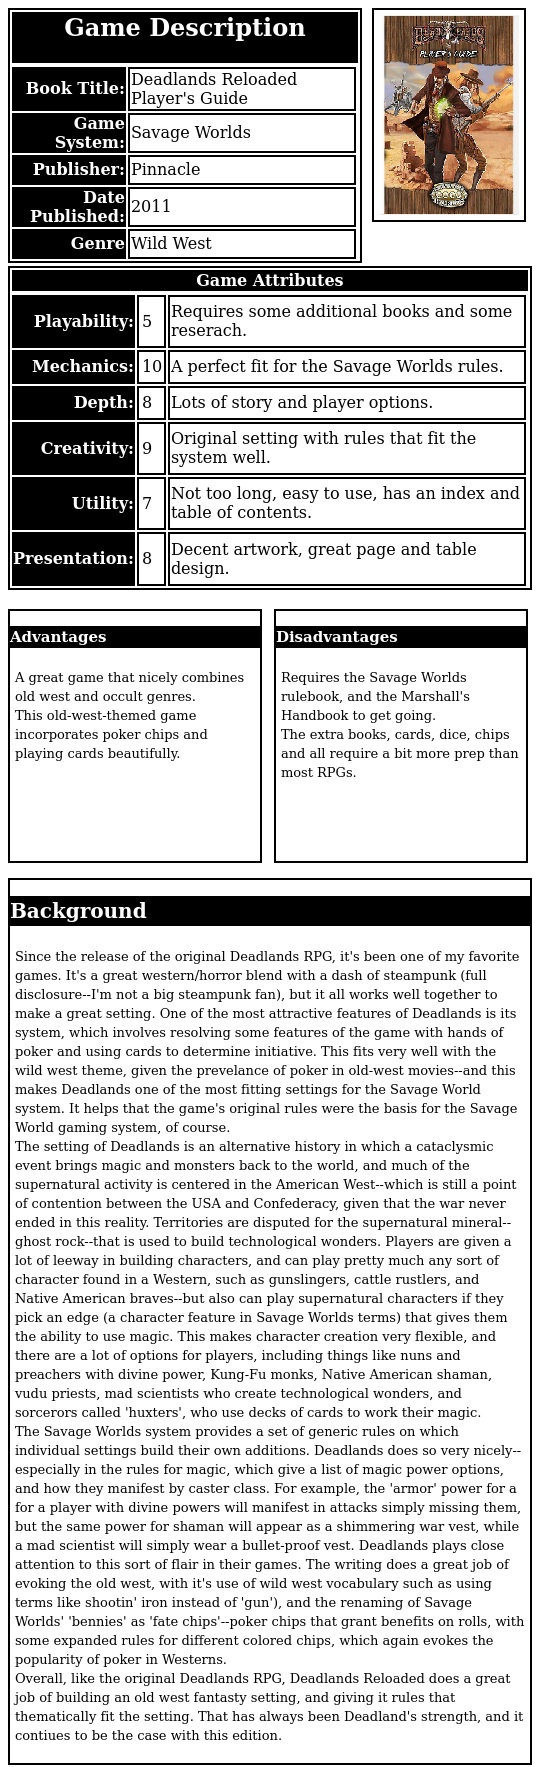 Deadlands Reloaded Players Guide Pdf